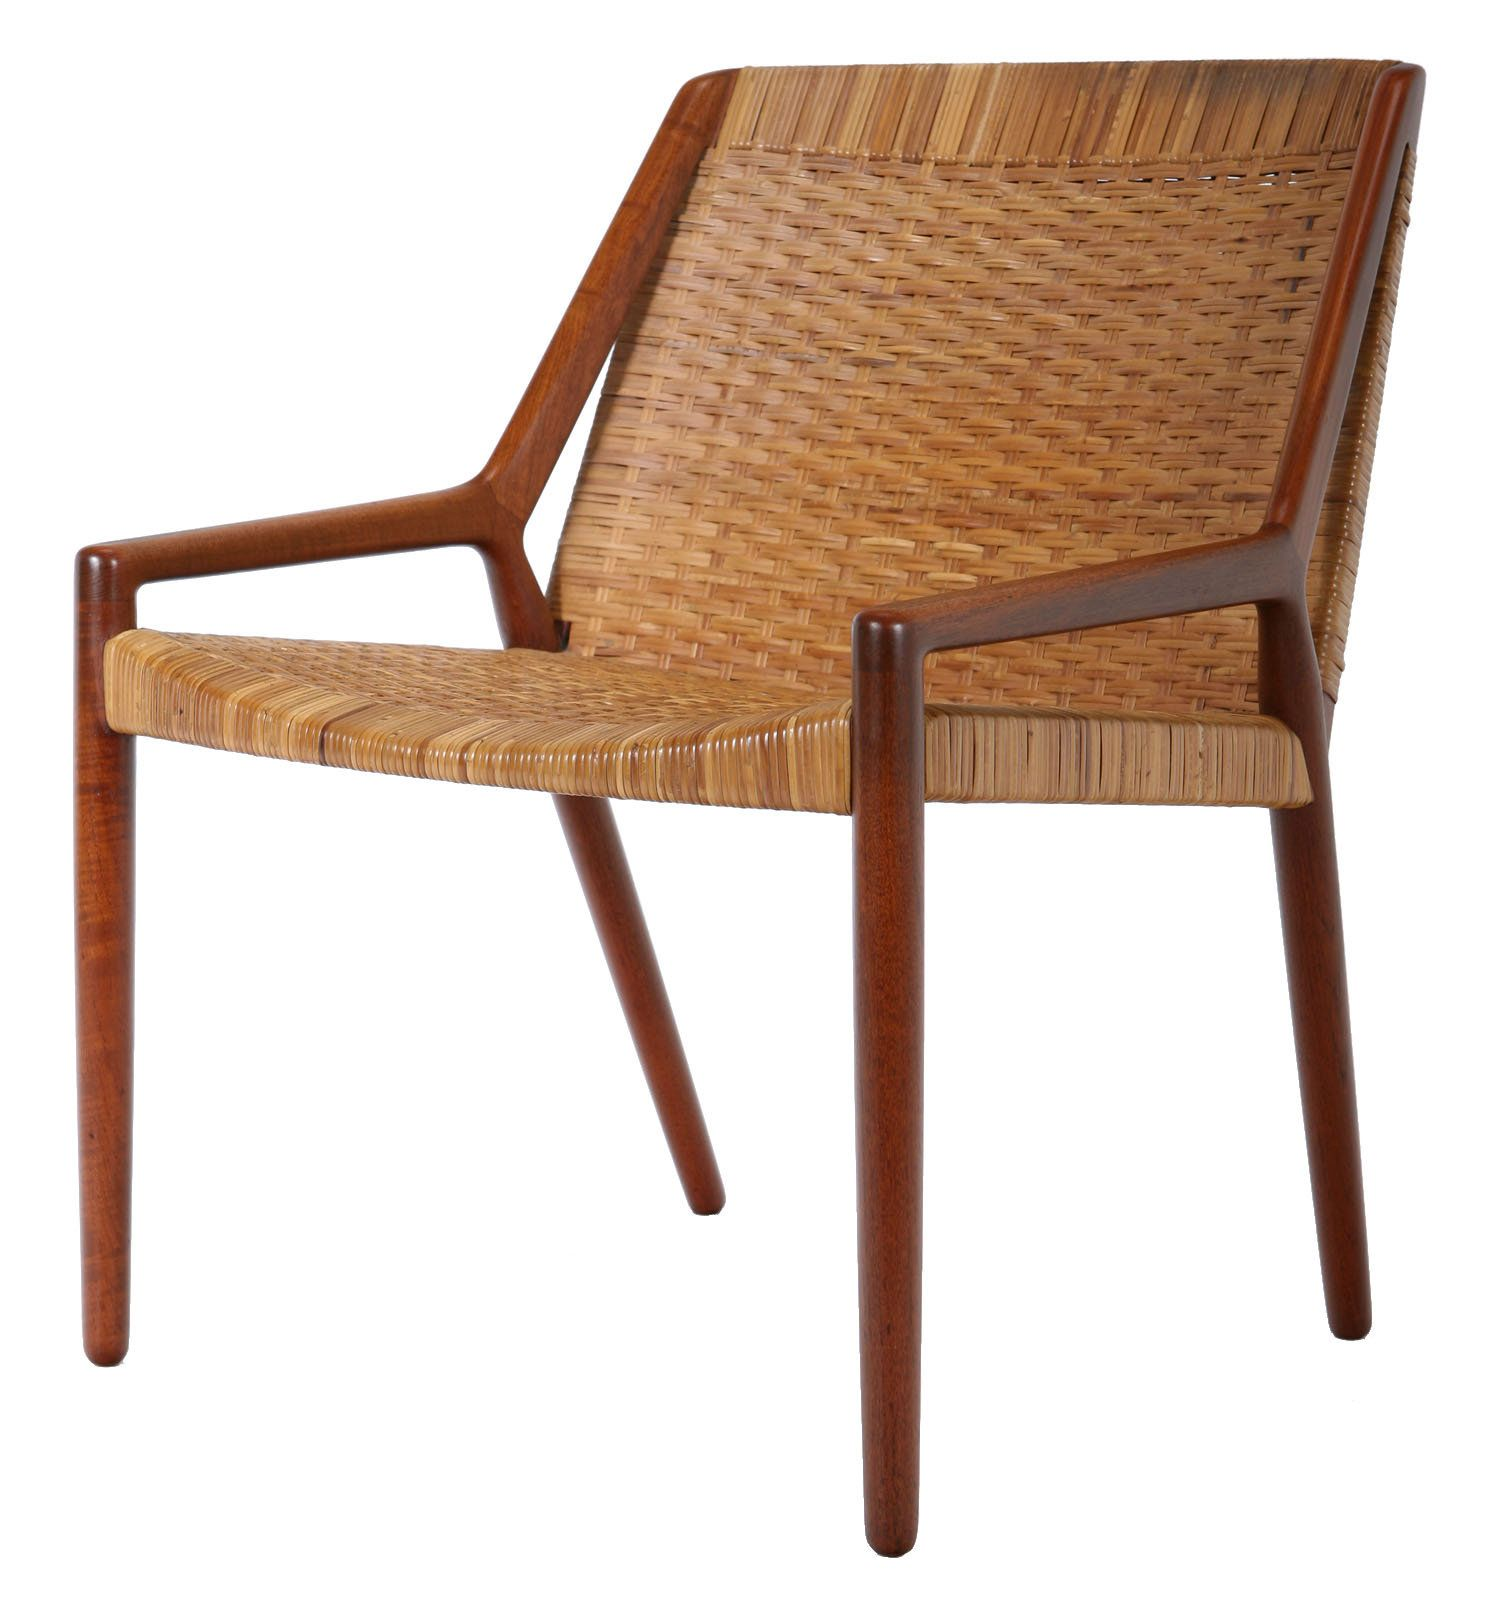 Easy wooden chair designs - E Larsen A B Madsen Teak And Cane Easy Chair 1951